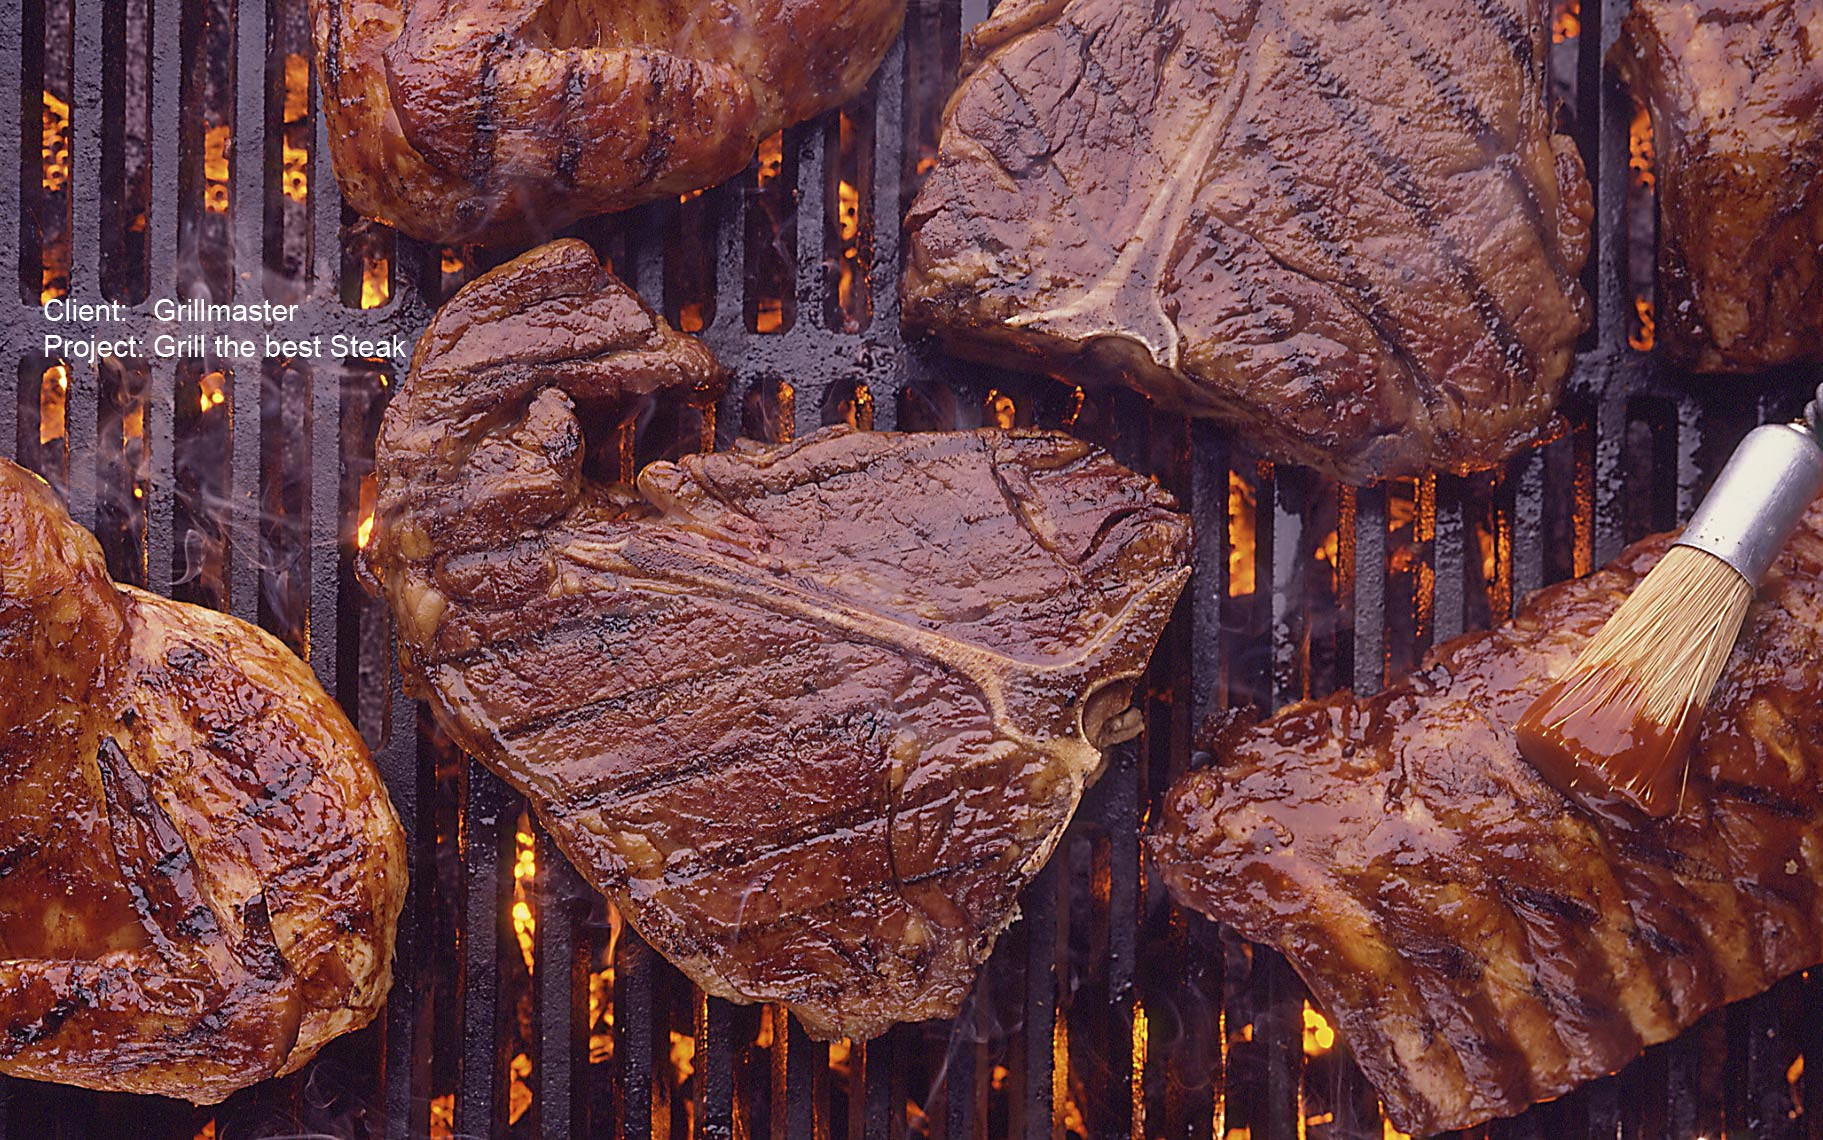 A391---Steaks-on-GrillT